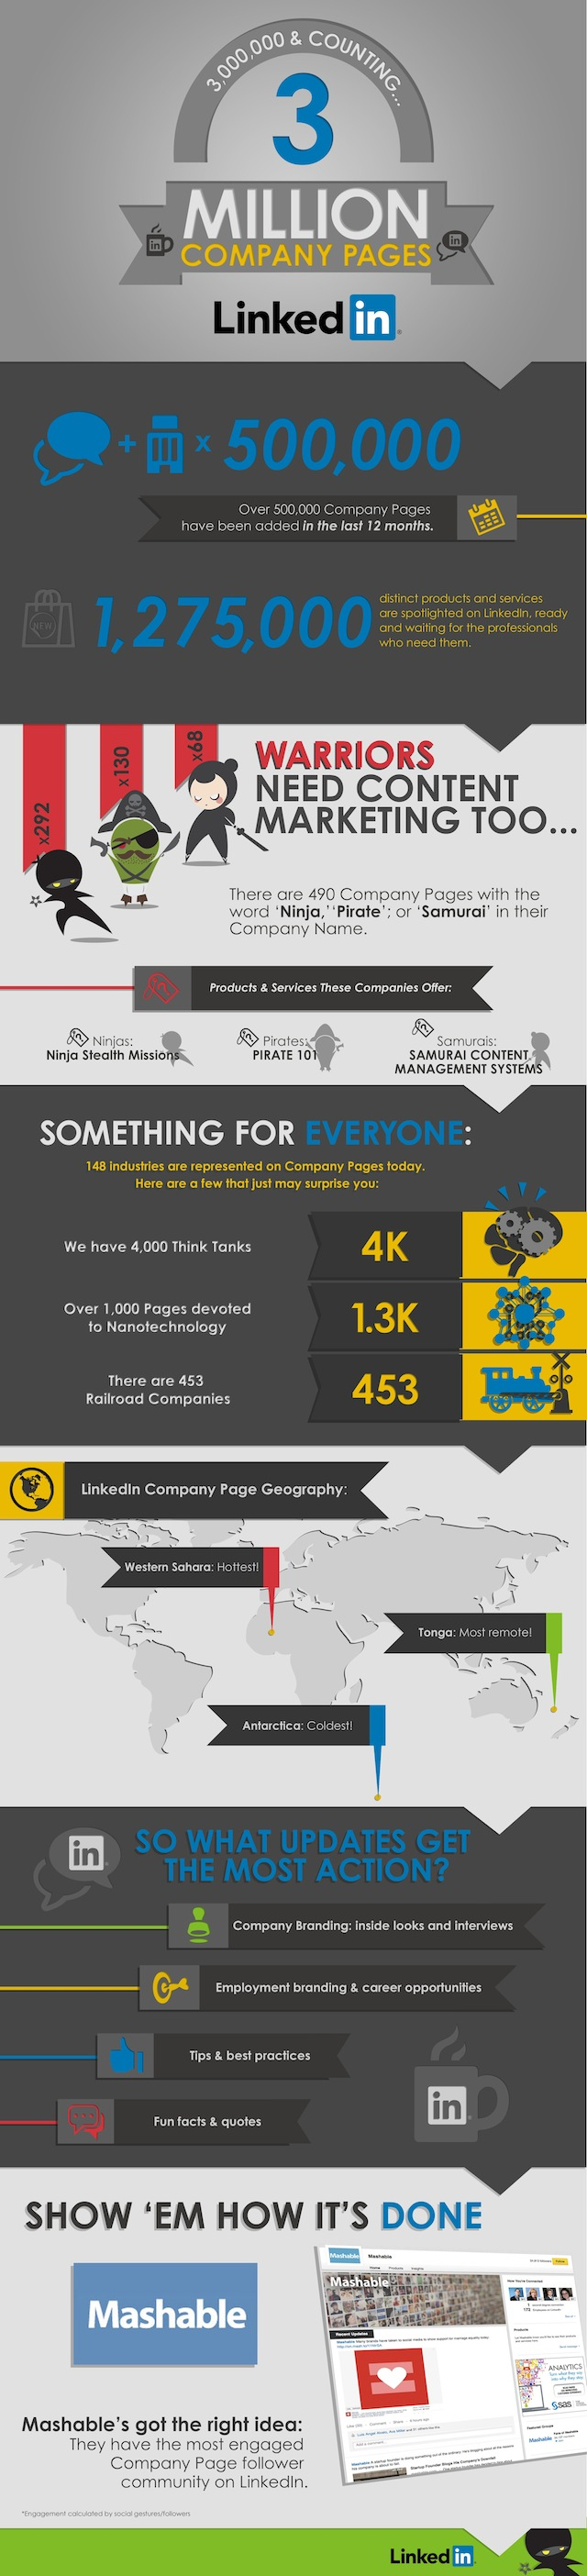 3 million linkedin company pages infographic